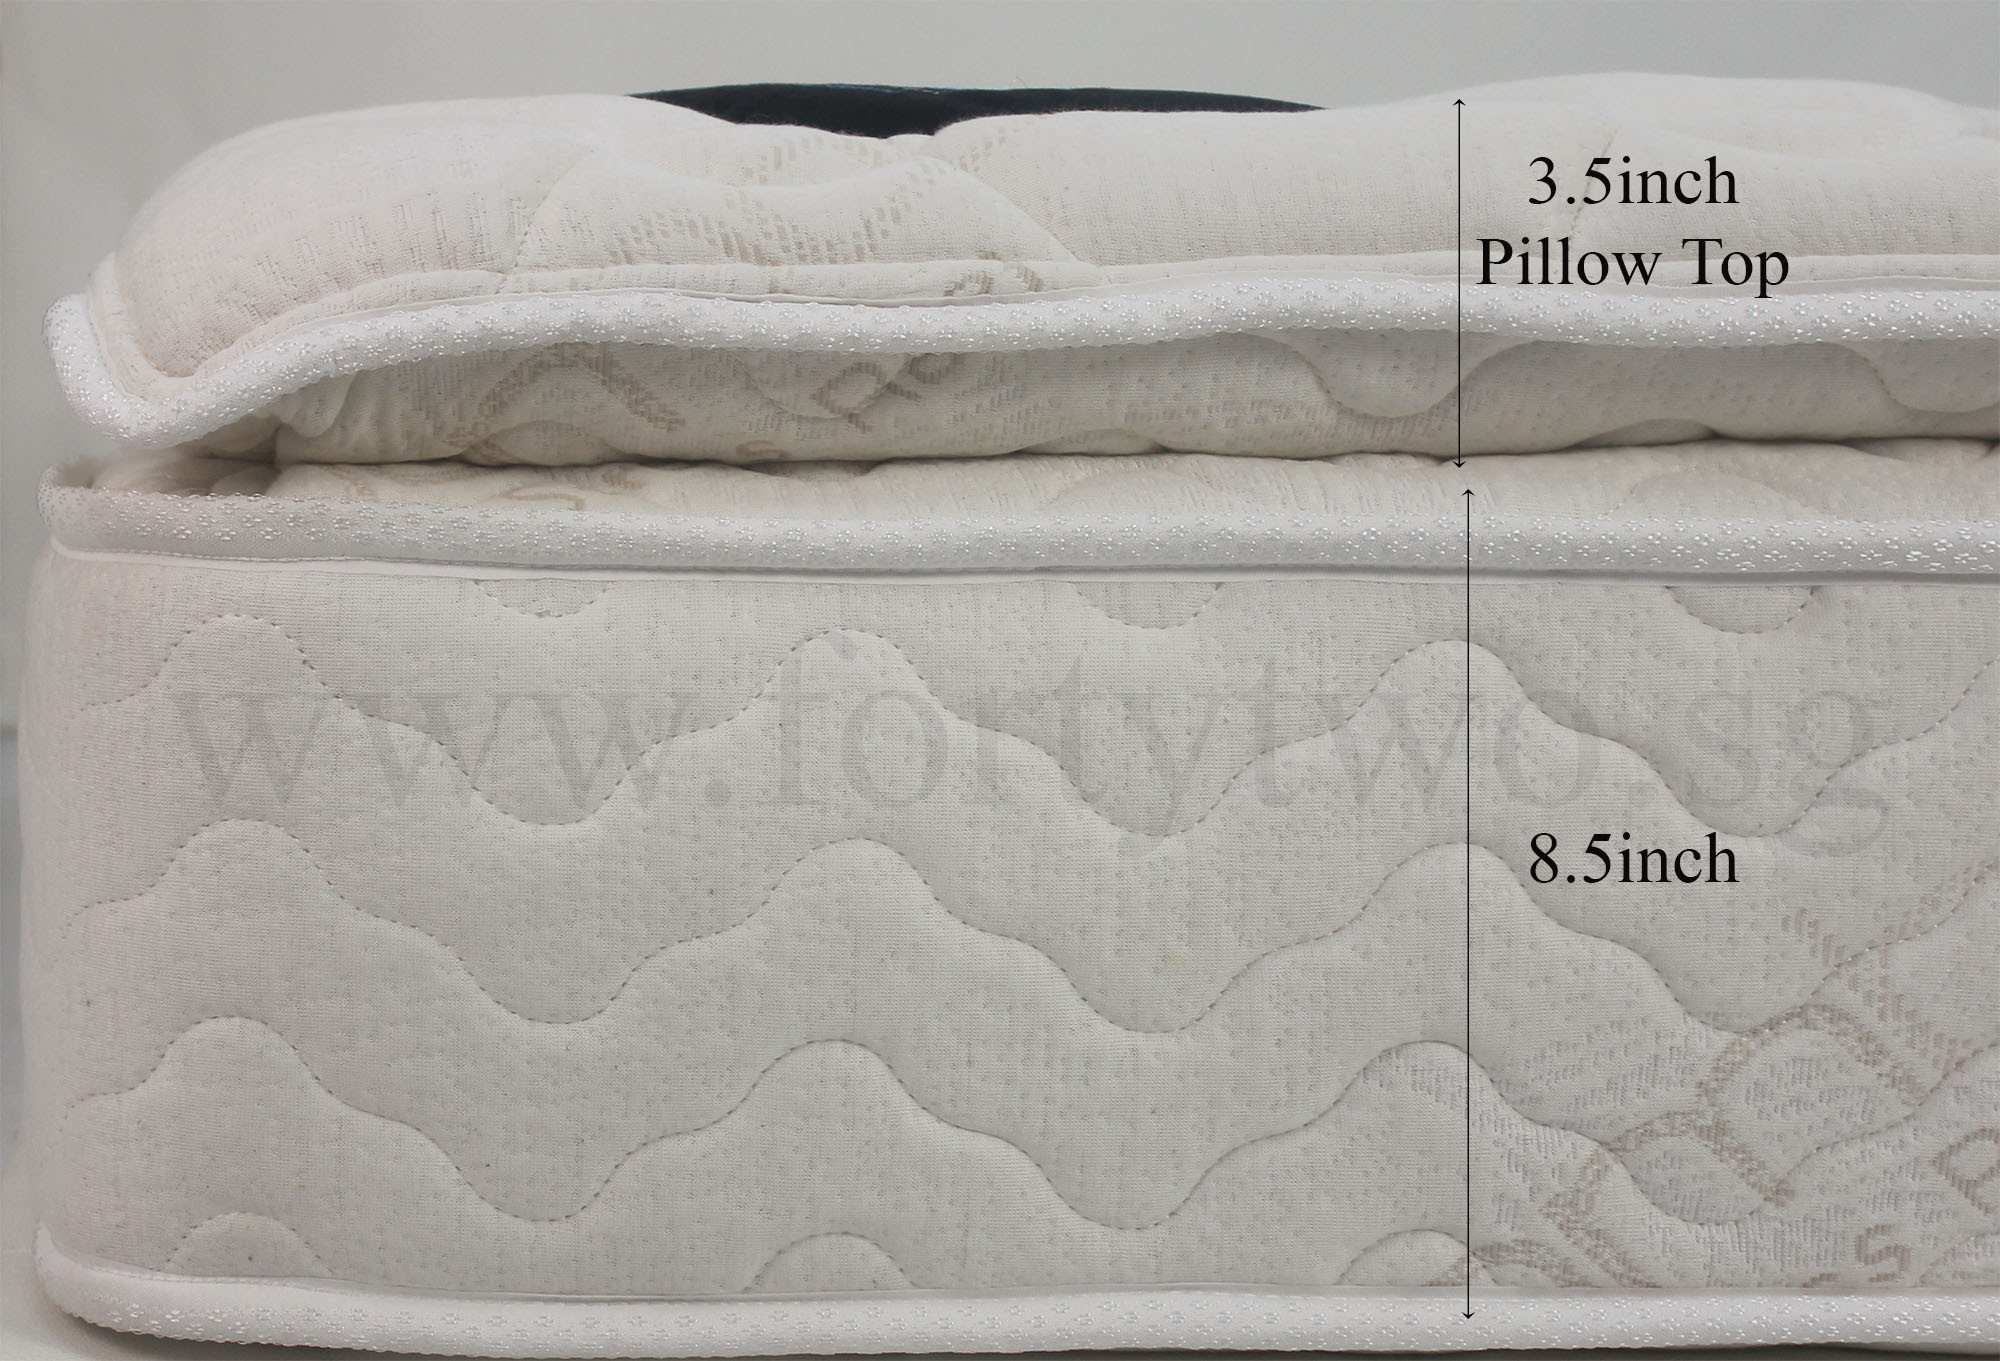 sienna top queen mattress pillow c topper